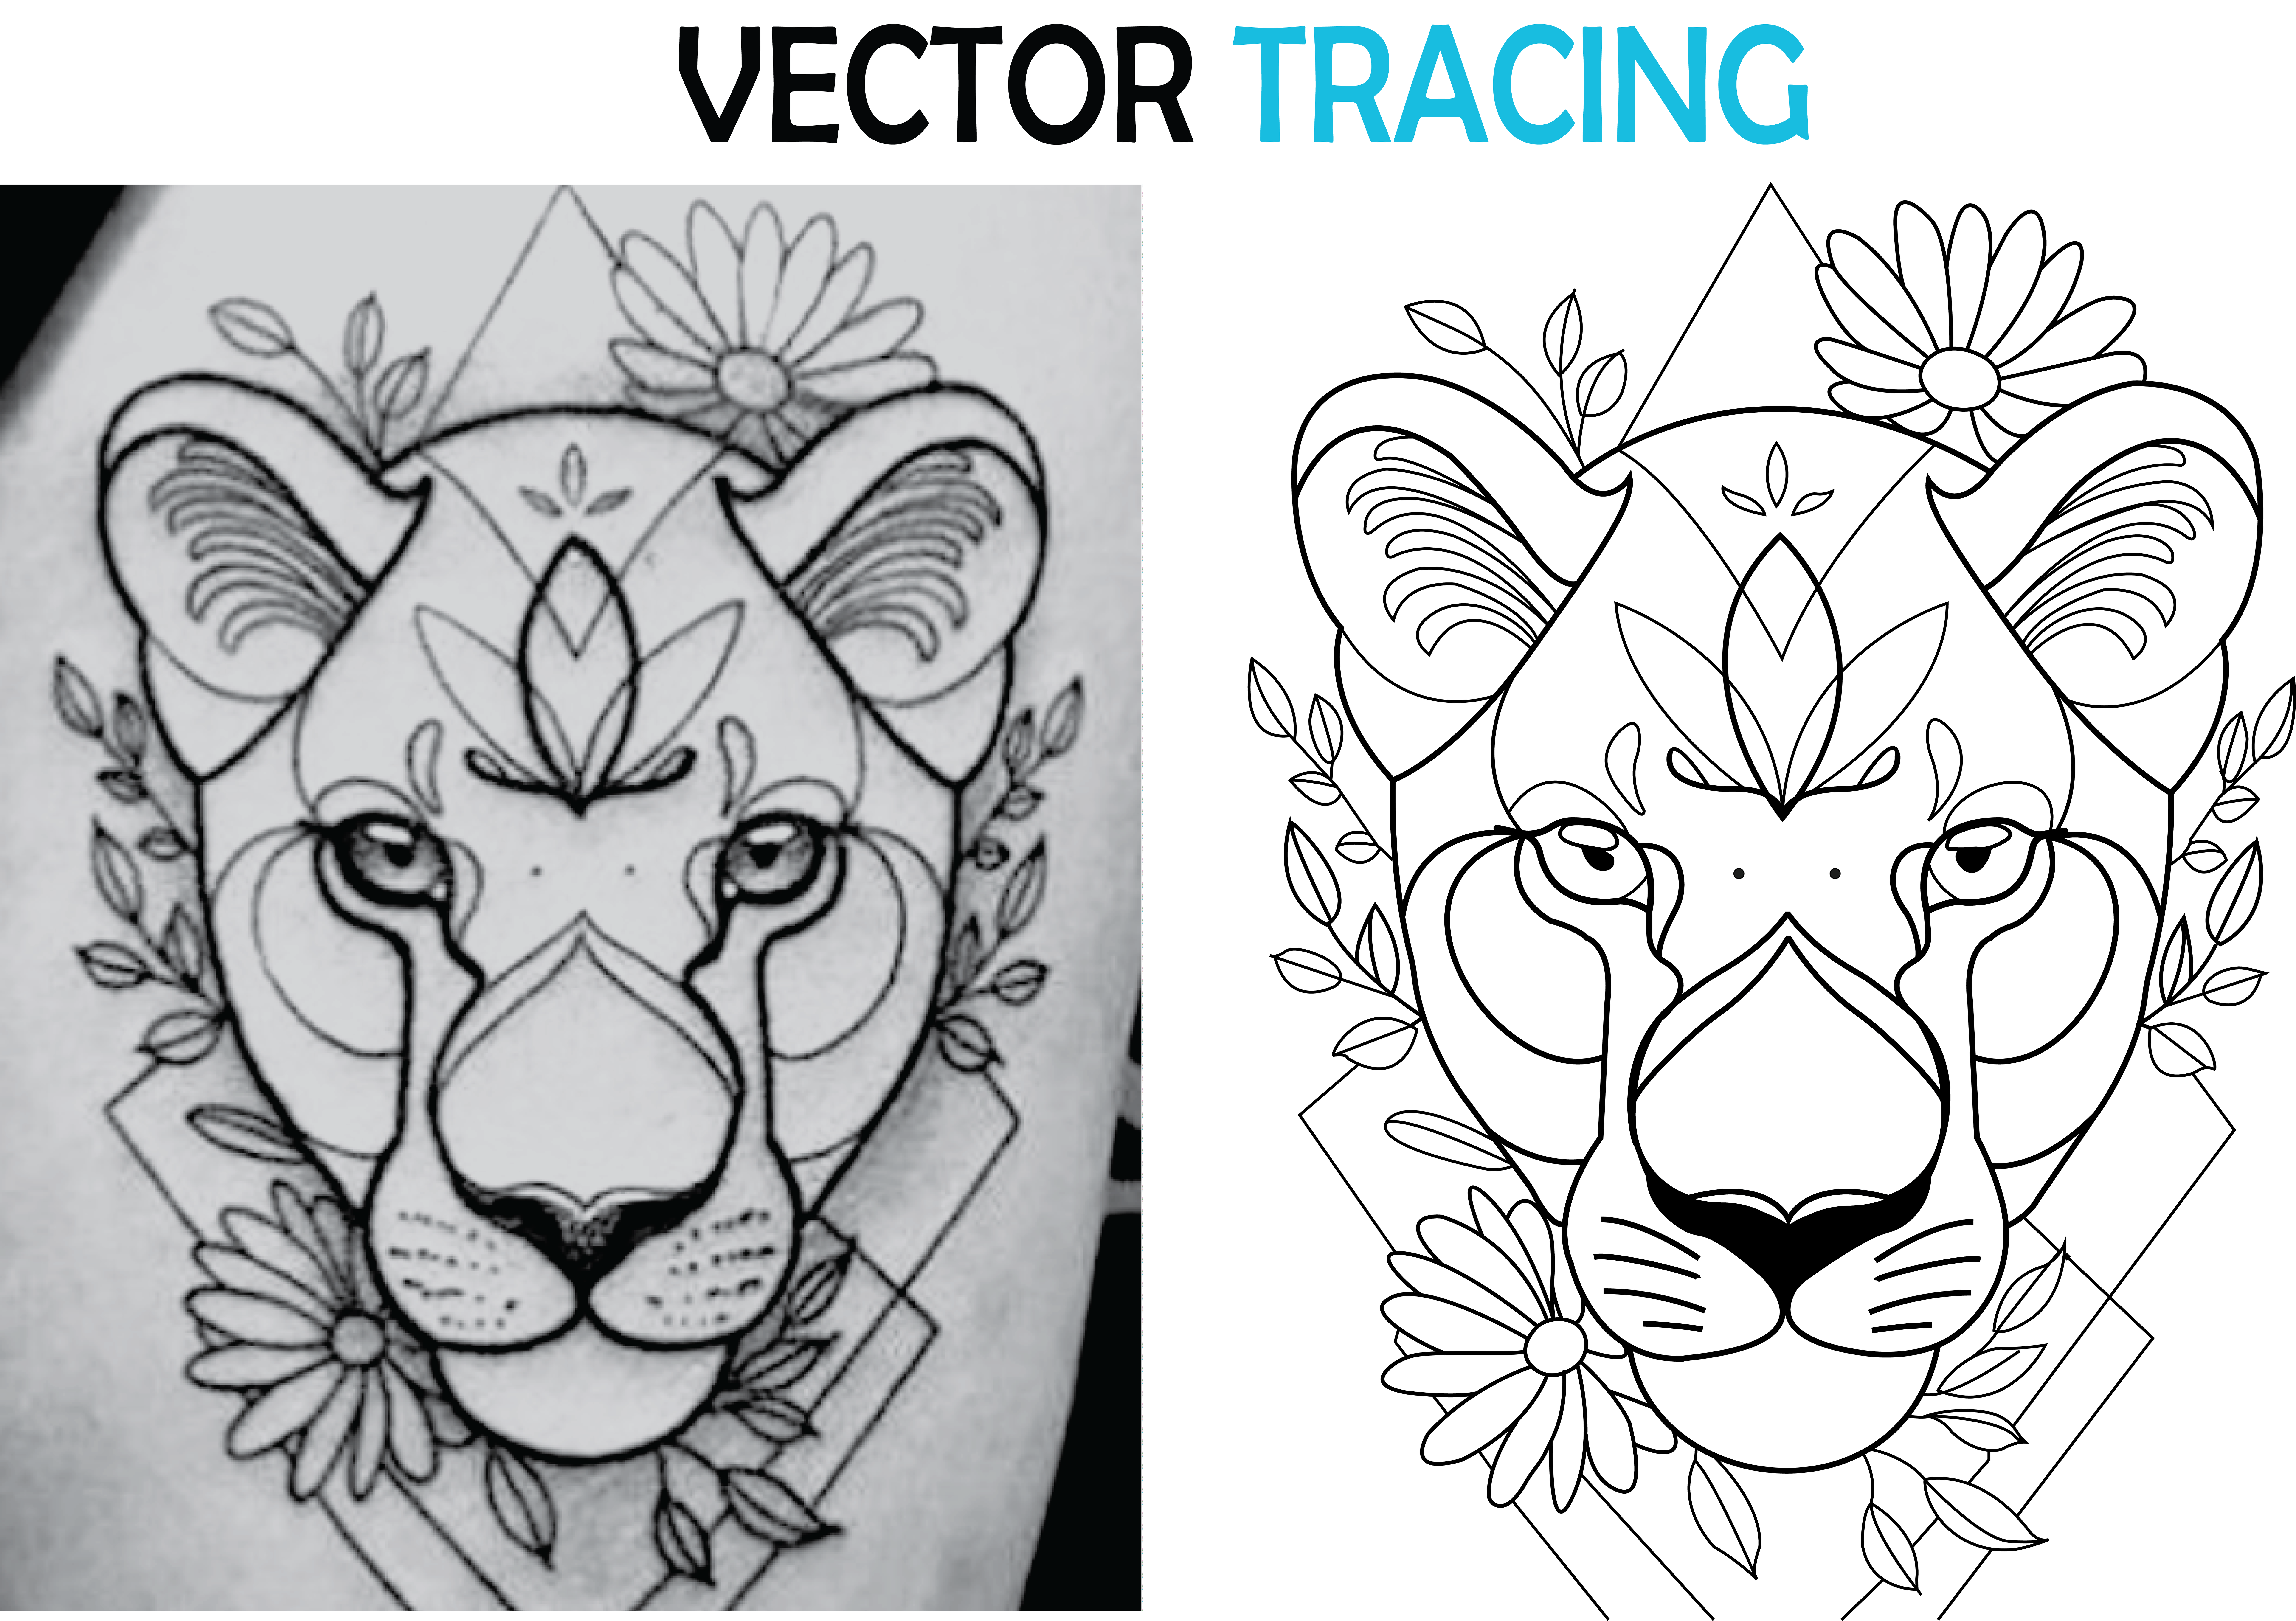 Vector tracing your logo or image,  convert to vector